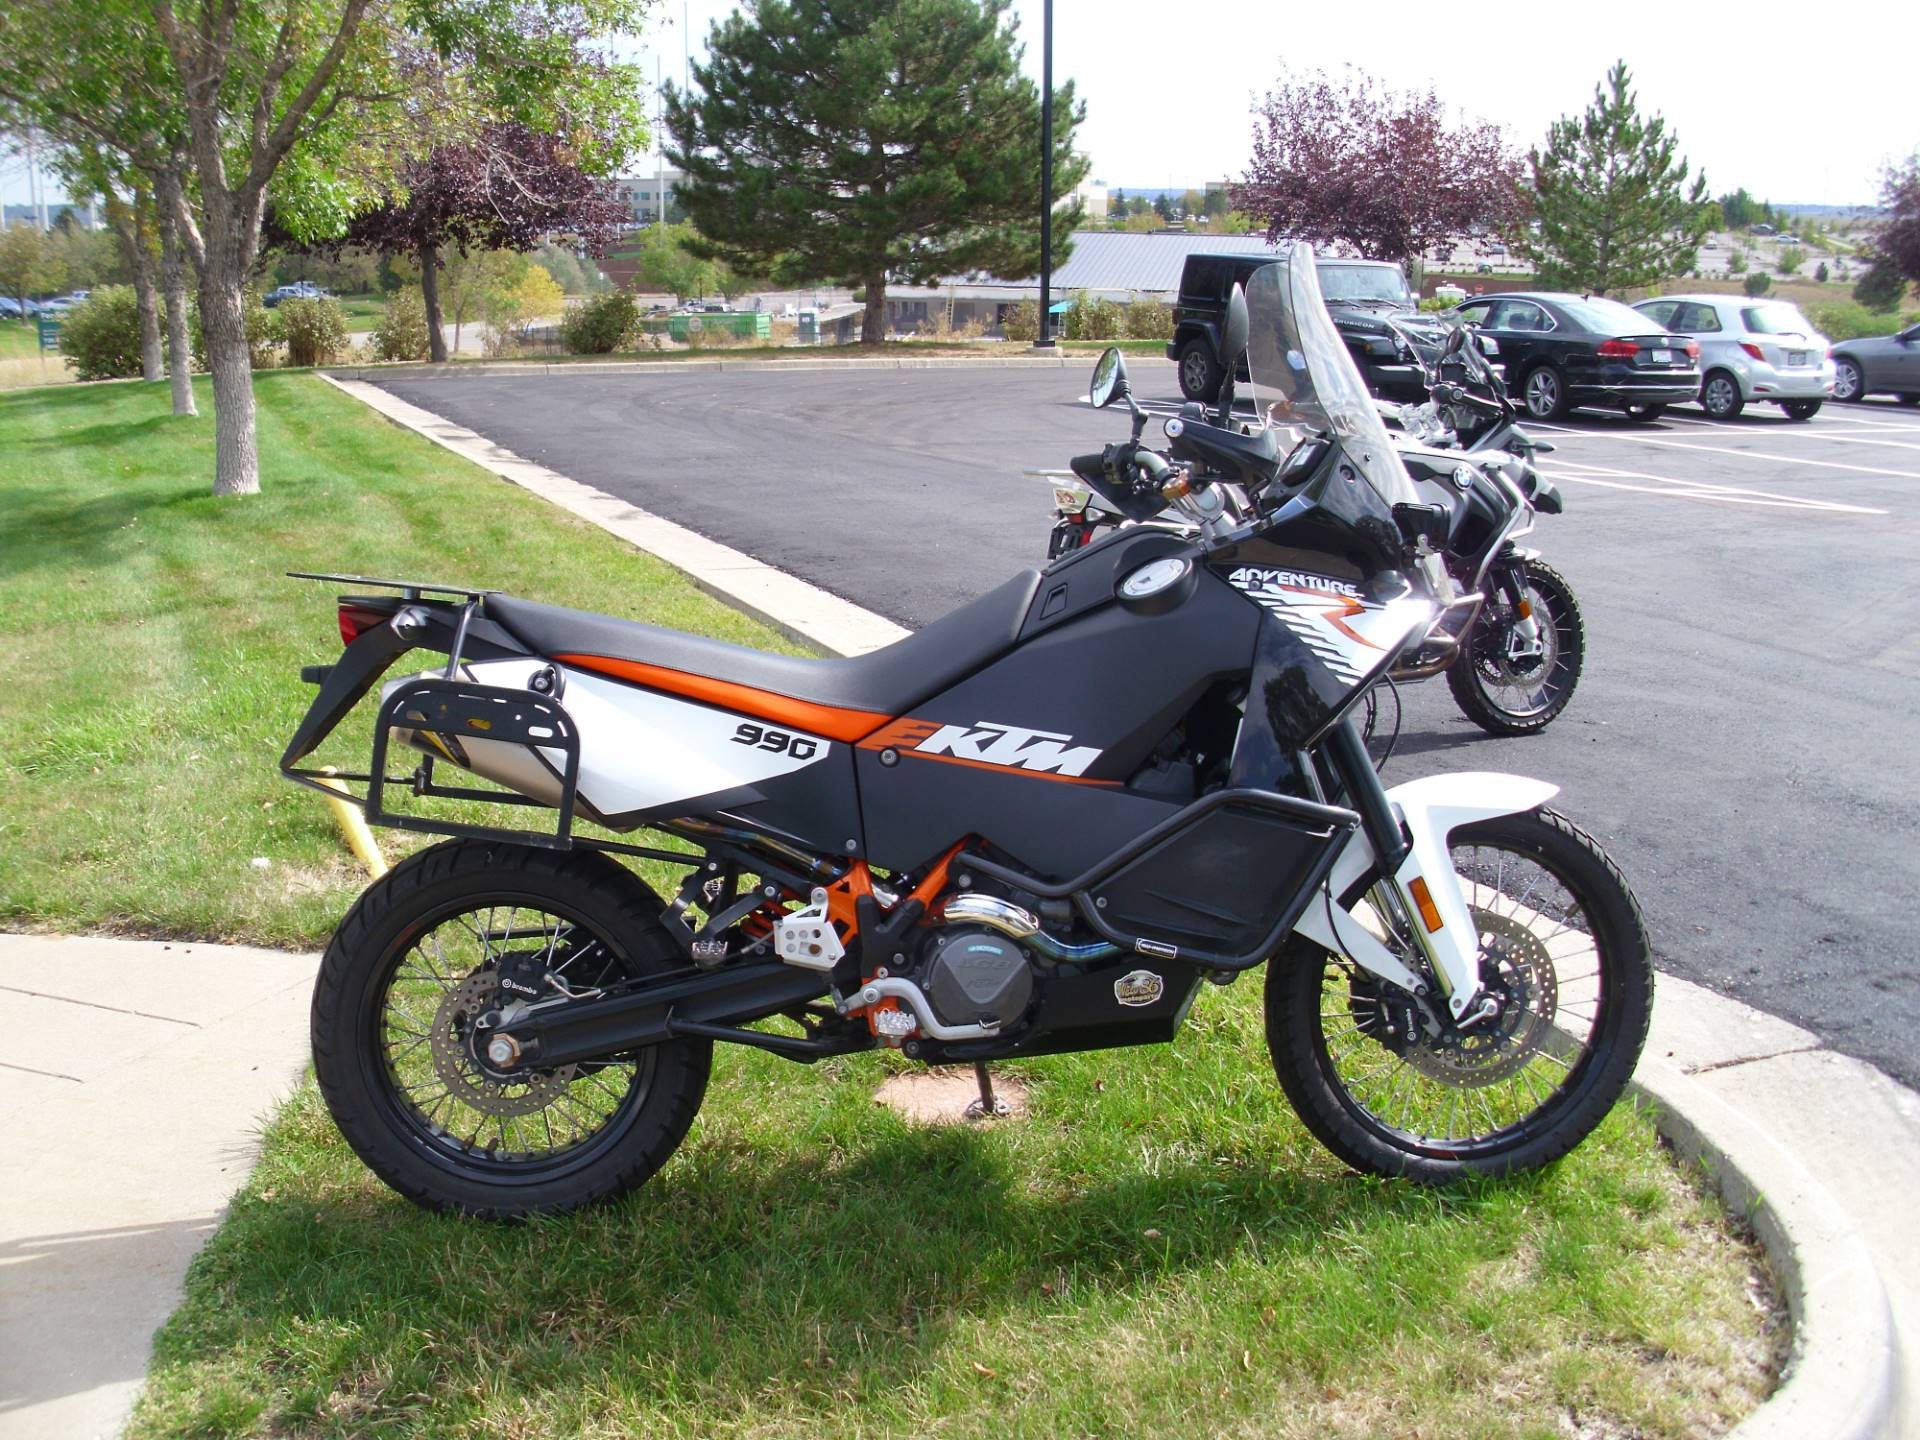 Used 2012 KTM 990 Adventure R Motorcycles in Centennial, CO